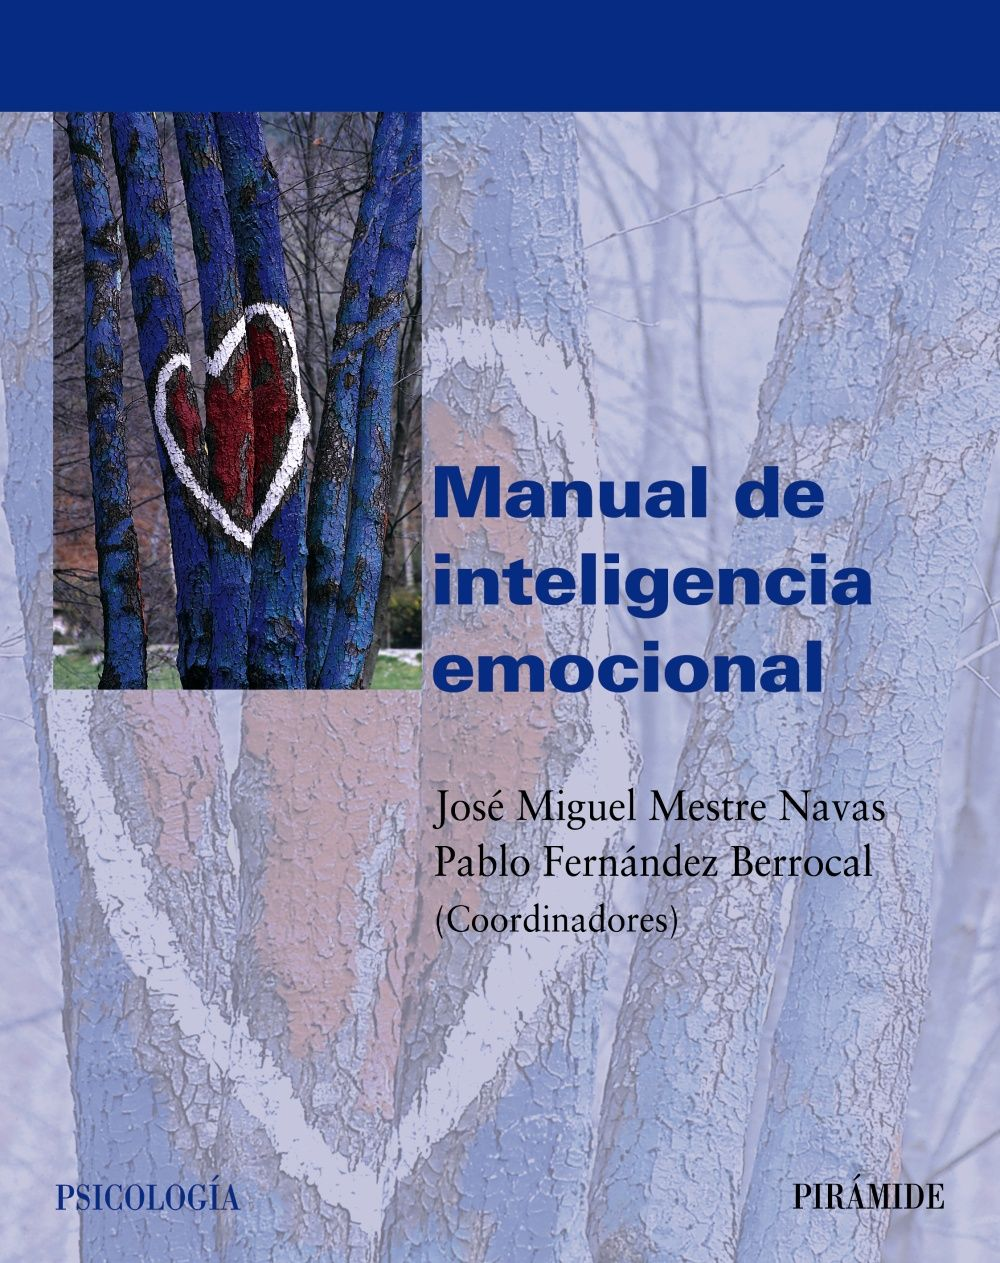 Descargar Libros Mc Graw Hill Pdf Gratis Manual De Inteligencia Emocional Descargar Libros Pdf Gratis